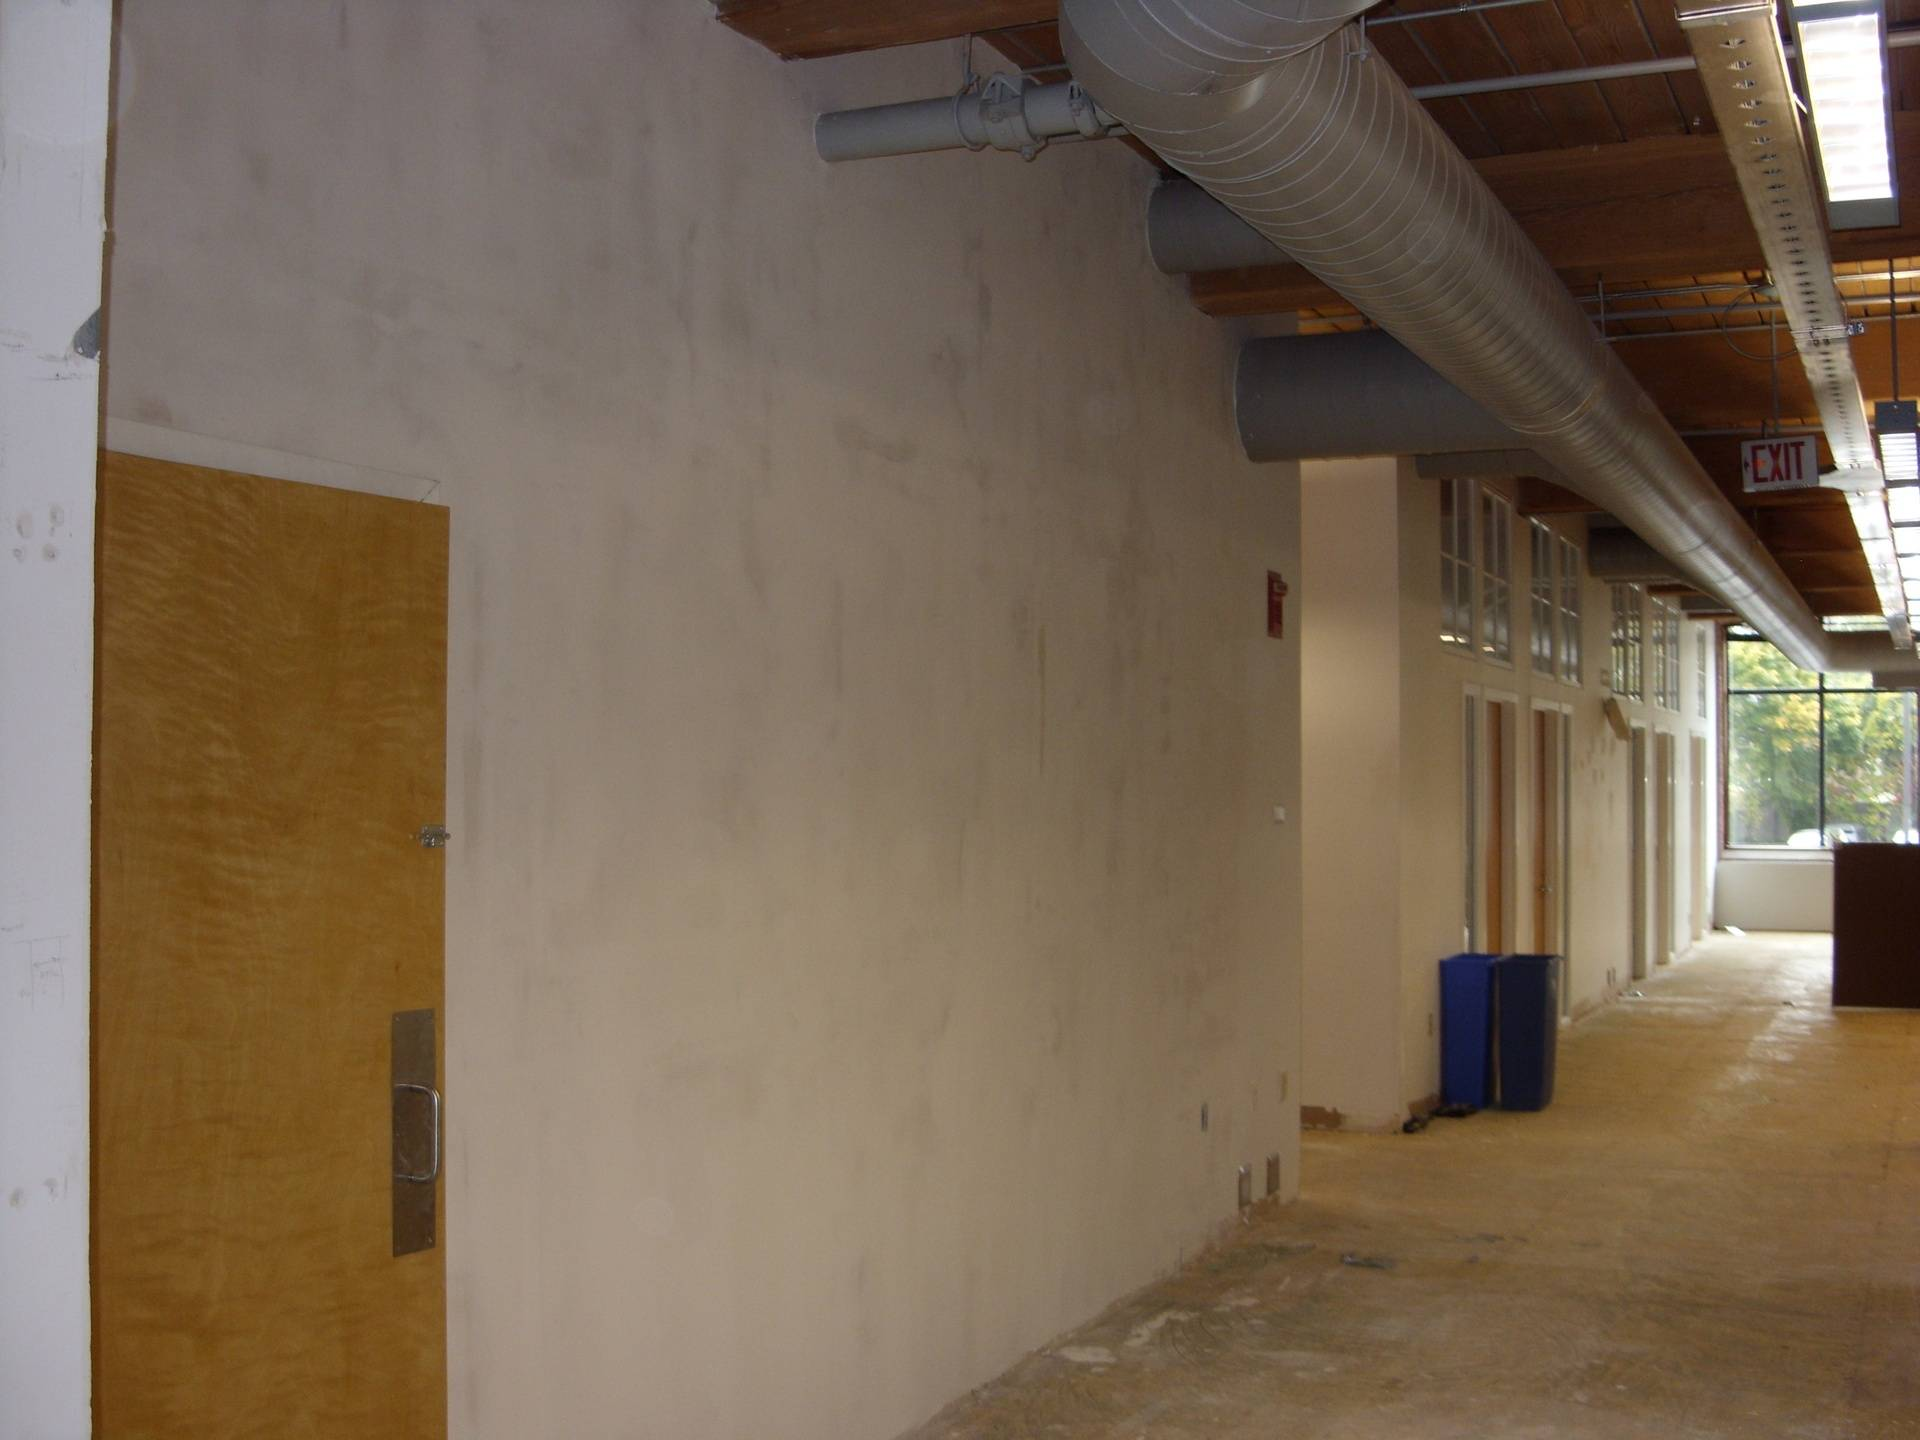 After Image 2: Opened Up Hallway with Storage Room to the Left